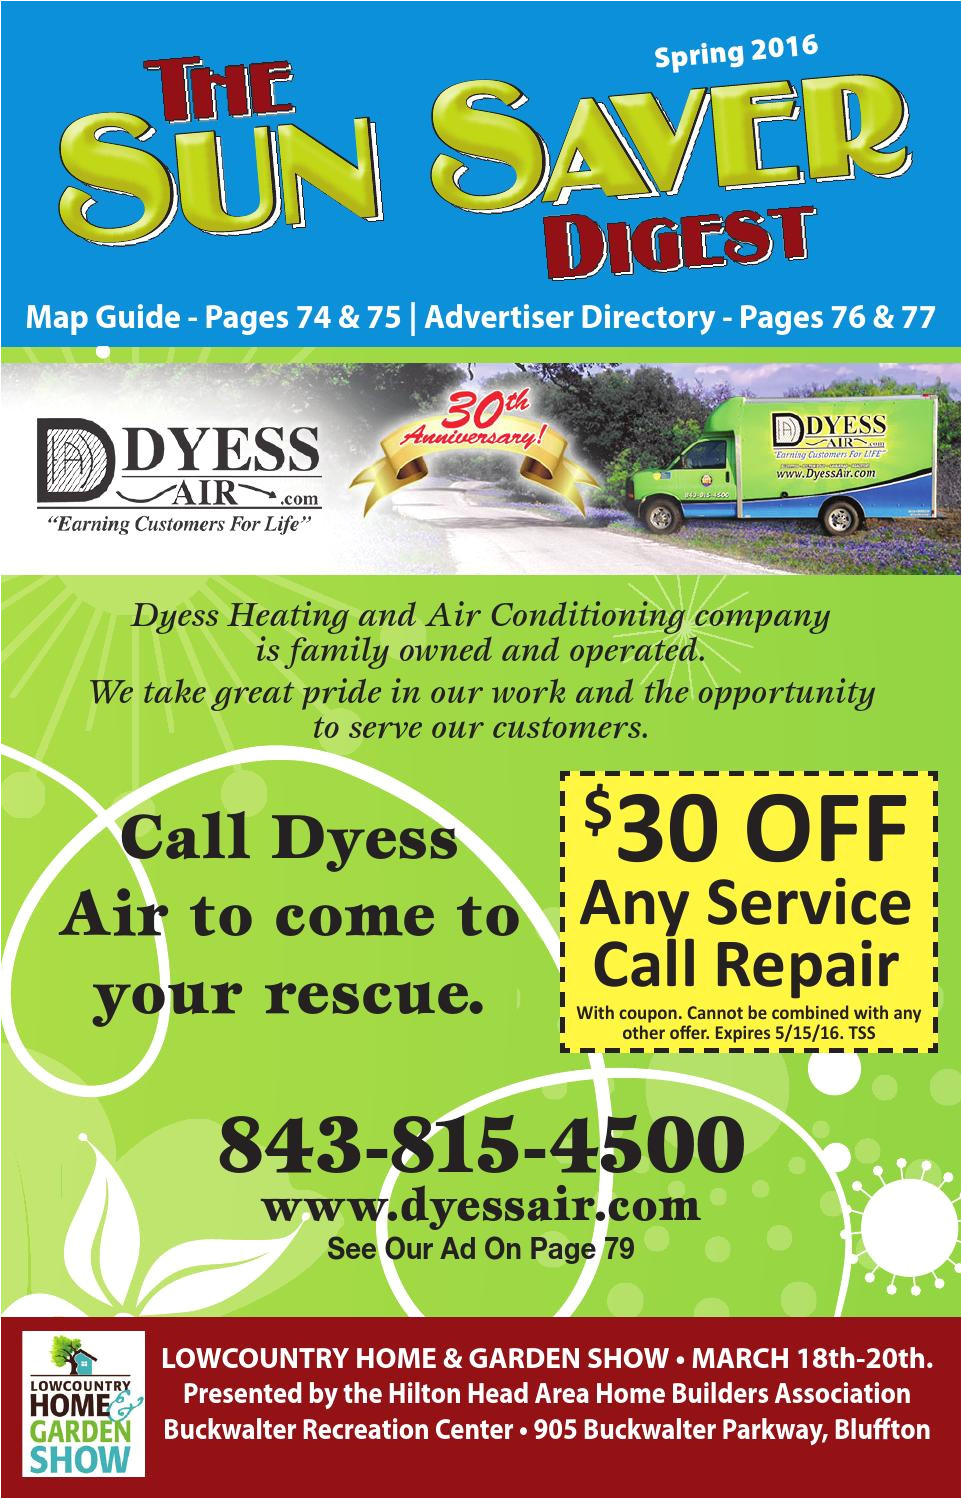 Heaven S Best Carpet Cleaning Bluffton Sc the Sun Saver Digest Spring 2016 by the Sun Saver Digest issuu